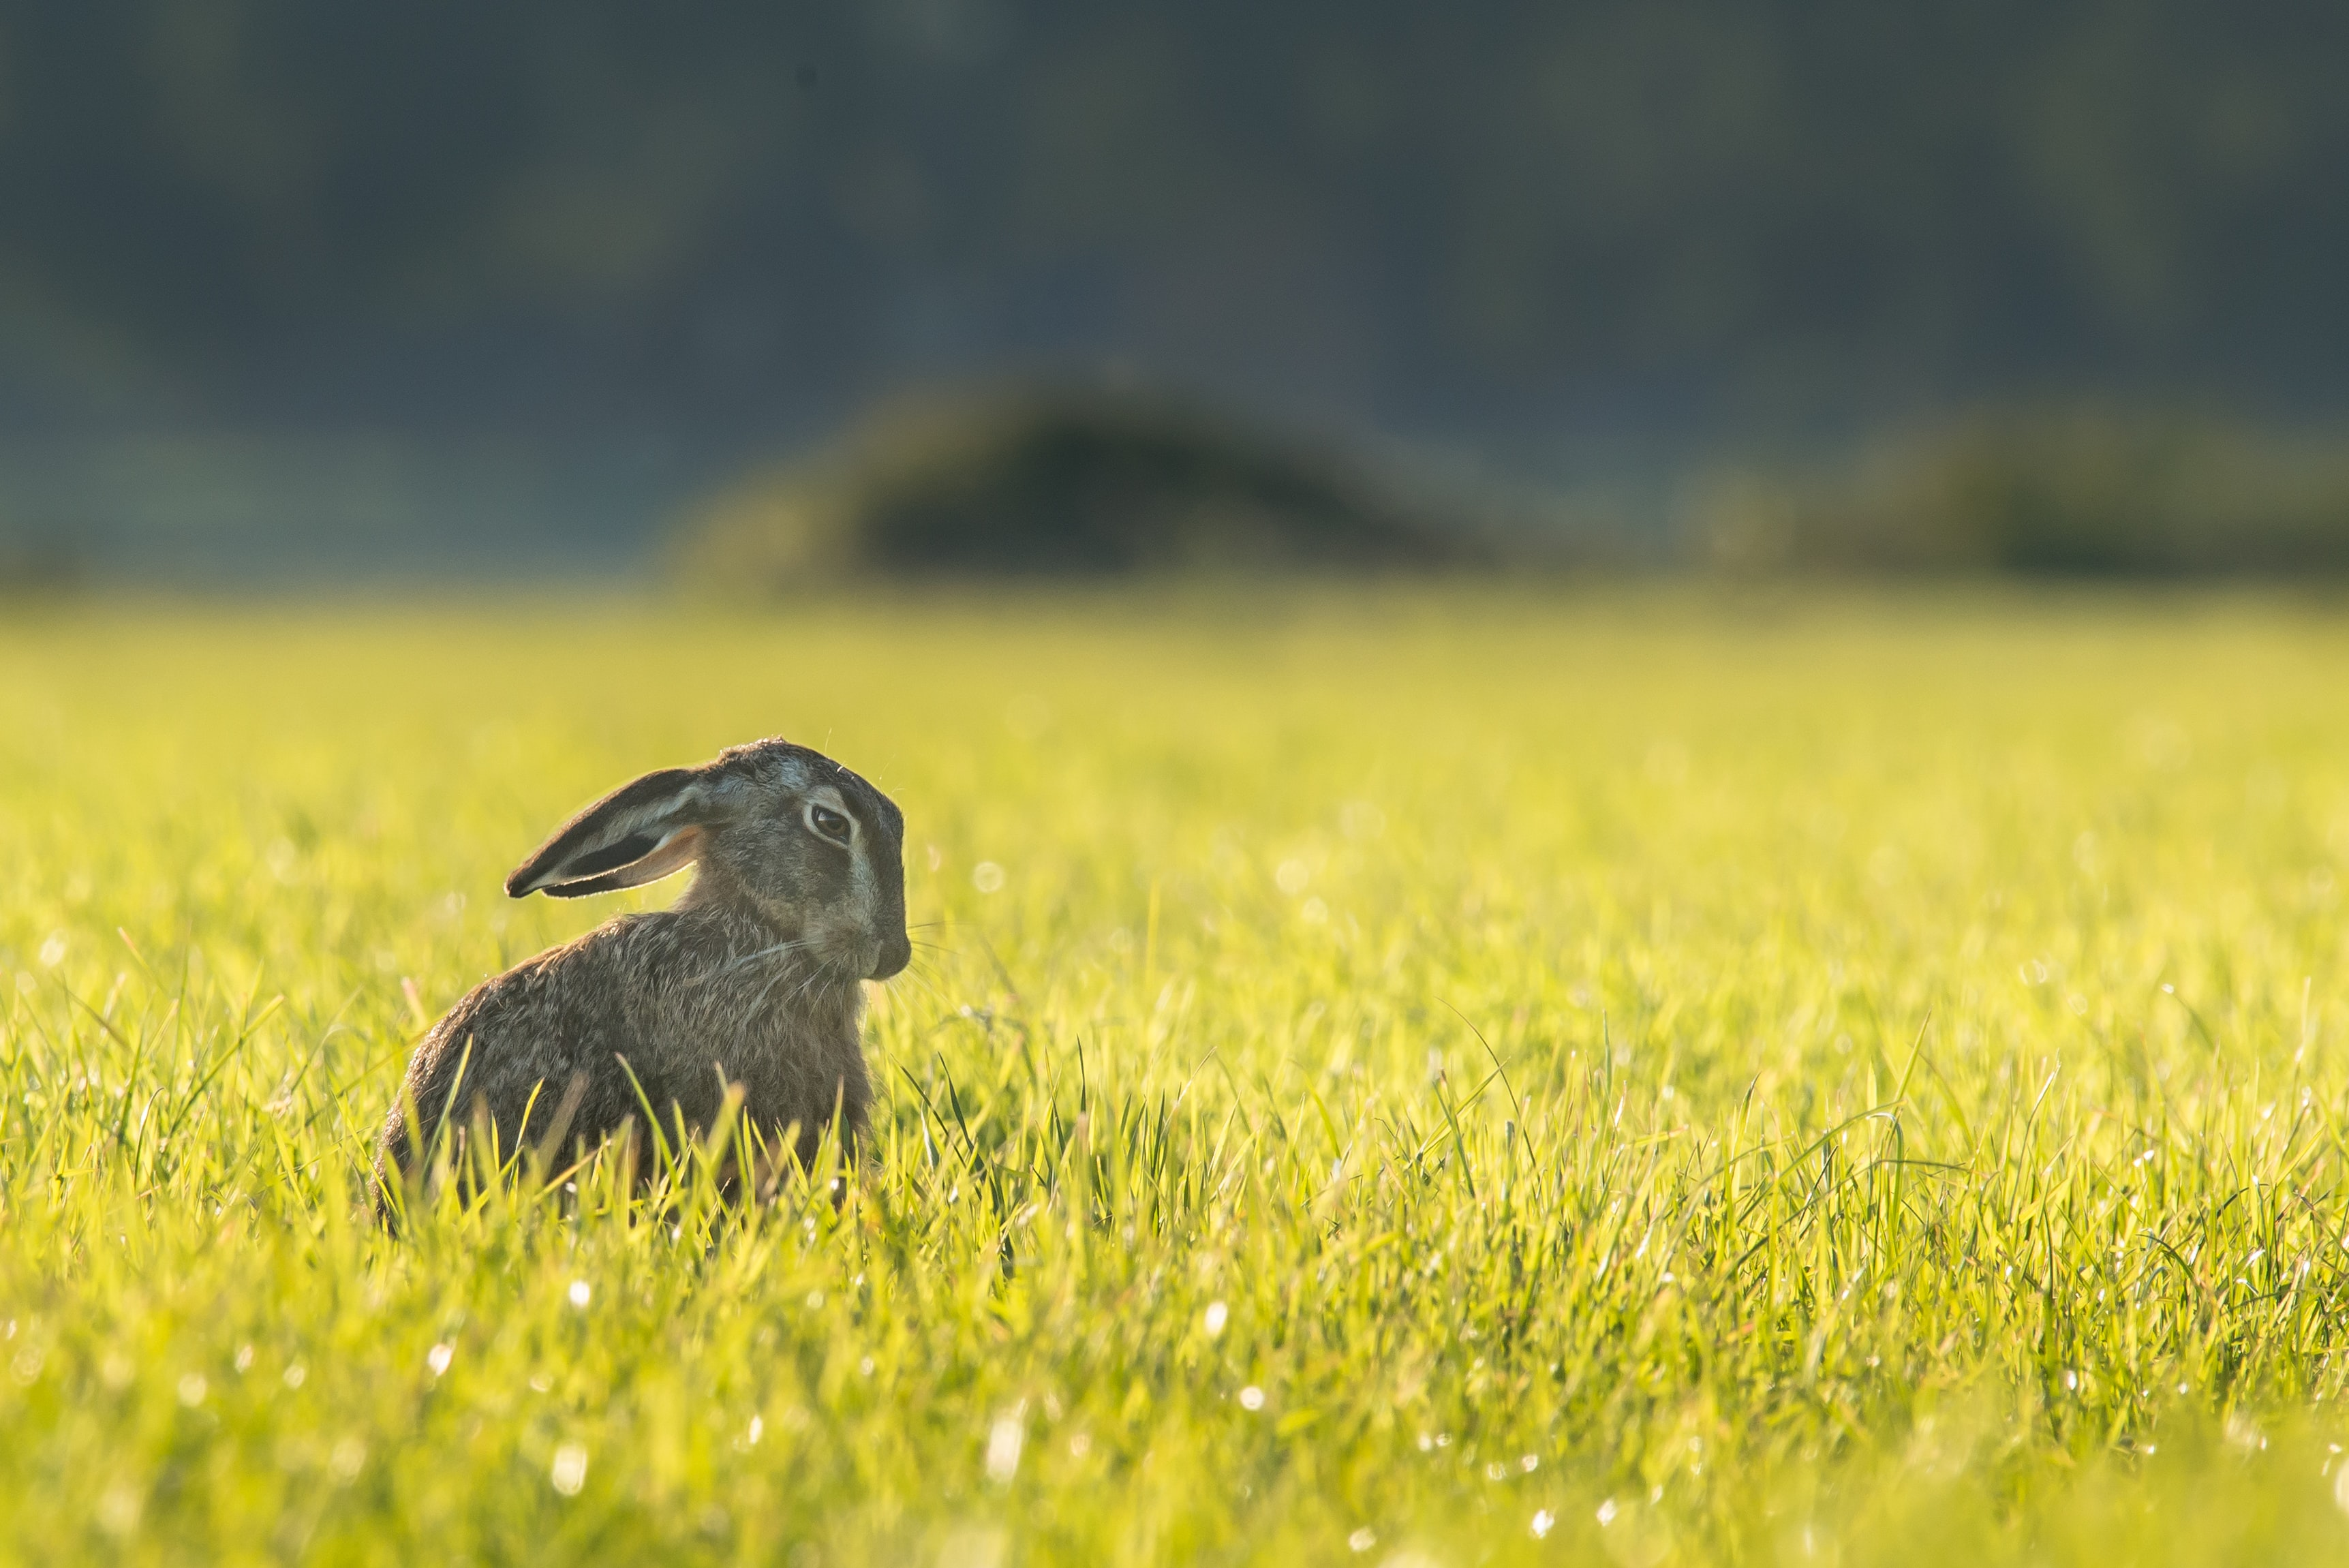 Rabbit in focus sitting in a field of grass